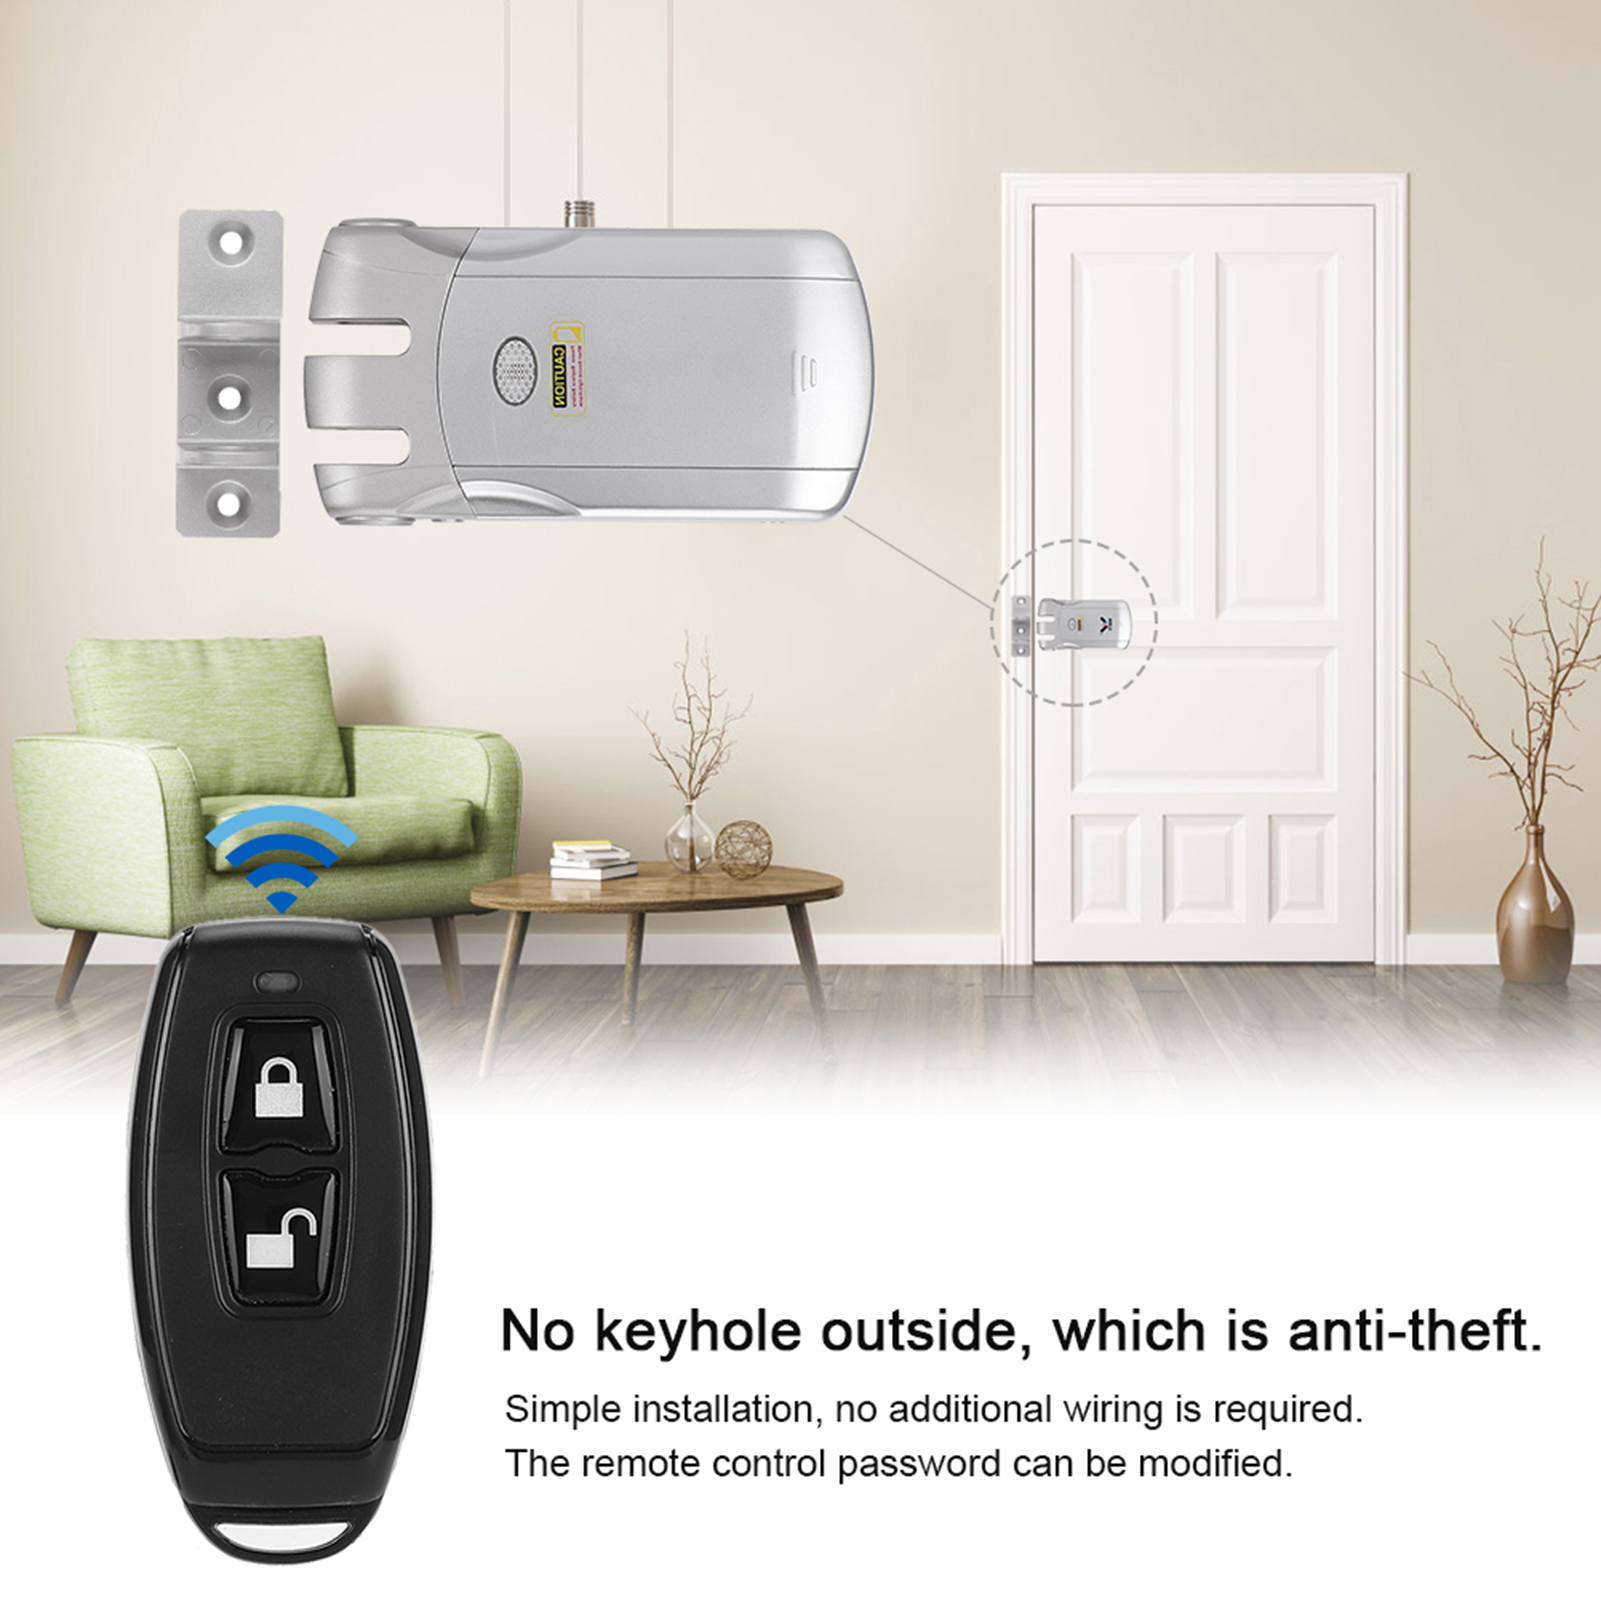 433Mhz-WIFI-Wireless-Door-Lock-Remote-Control-USB-Charging-For-Home-Security miniature 17